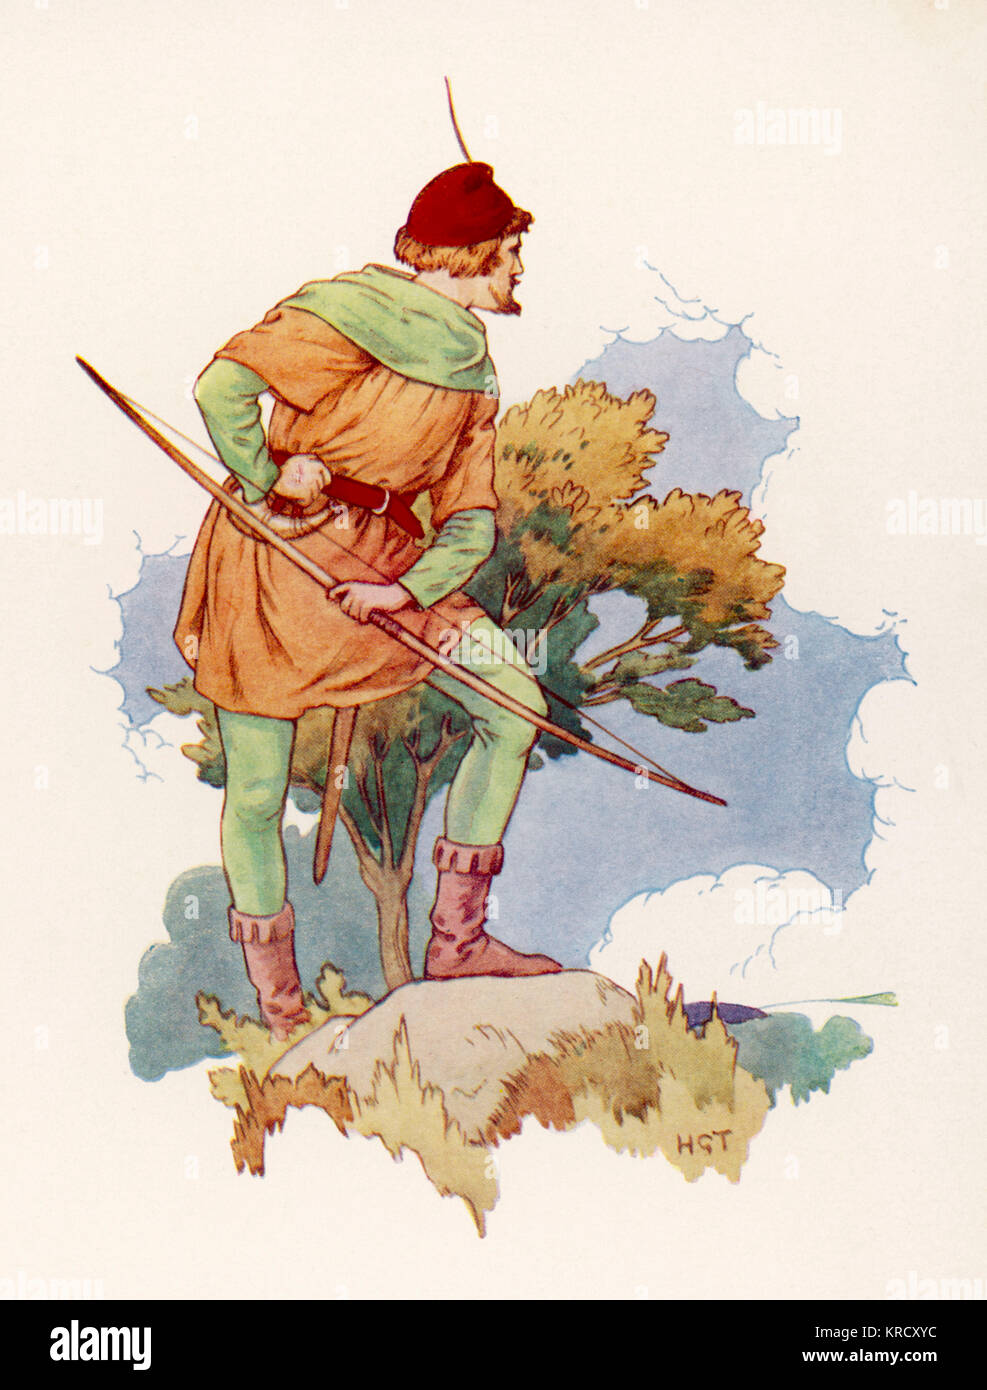 Robin Hood keeping a lookout for  his enemy, Guy of Gisbourne,  from a safe distance.        Date: circa 1930 - Stock Image